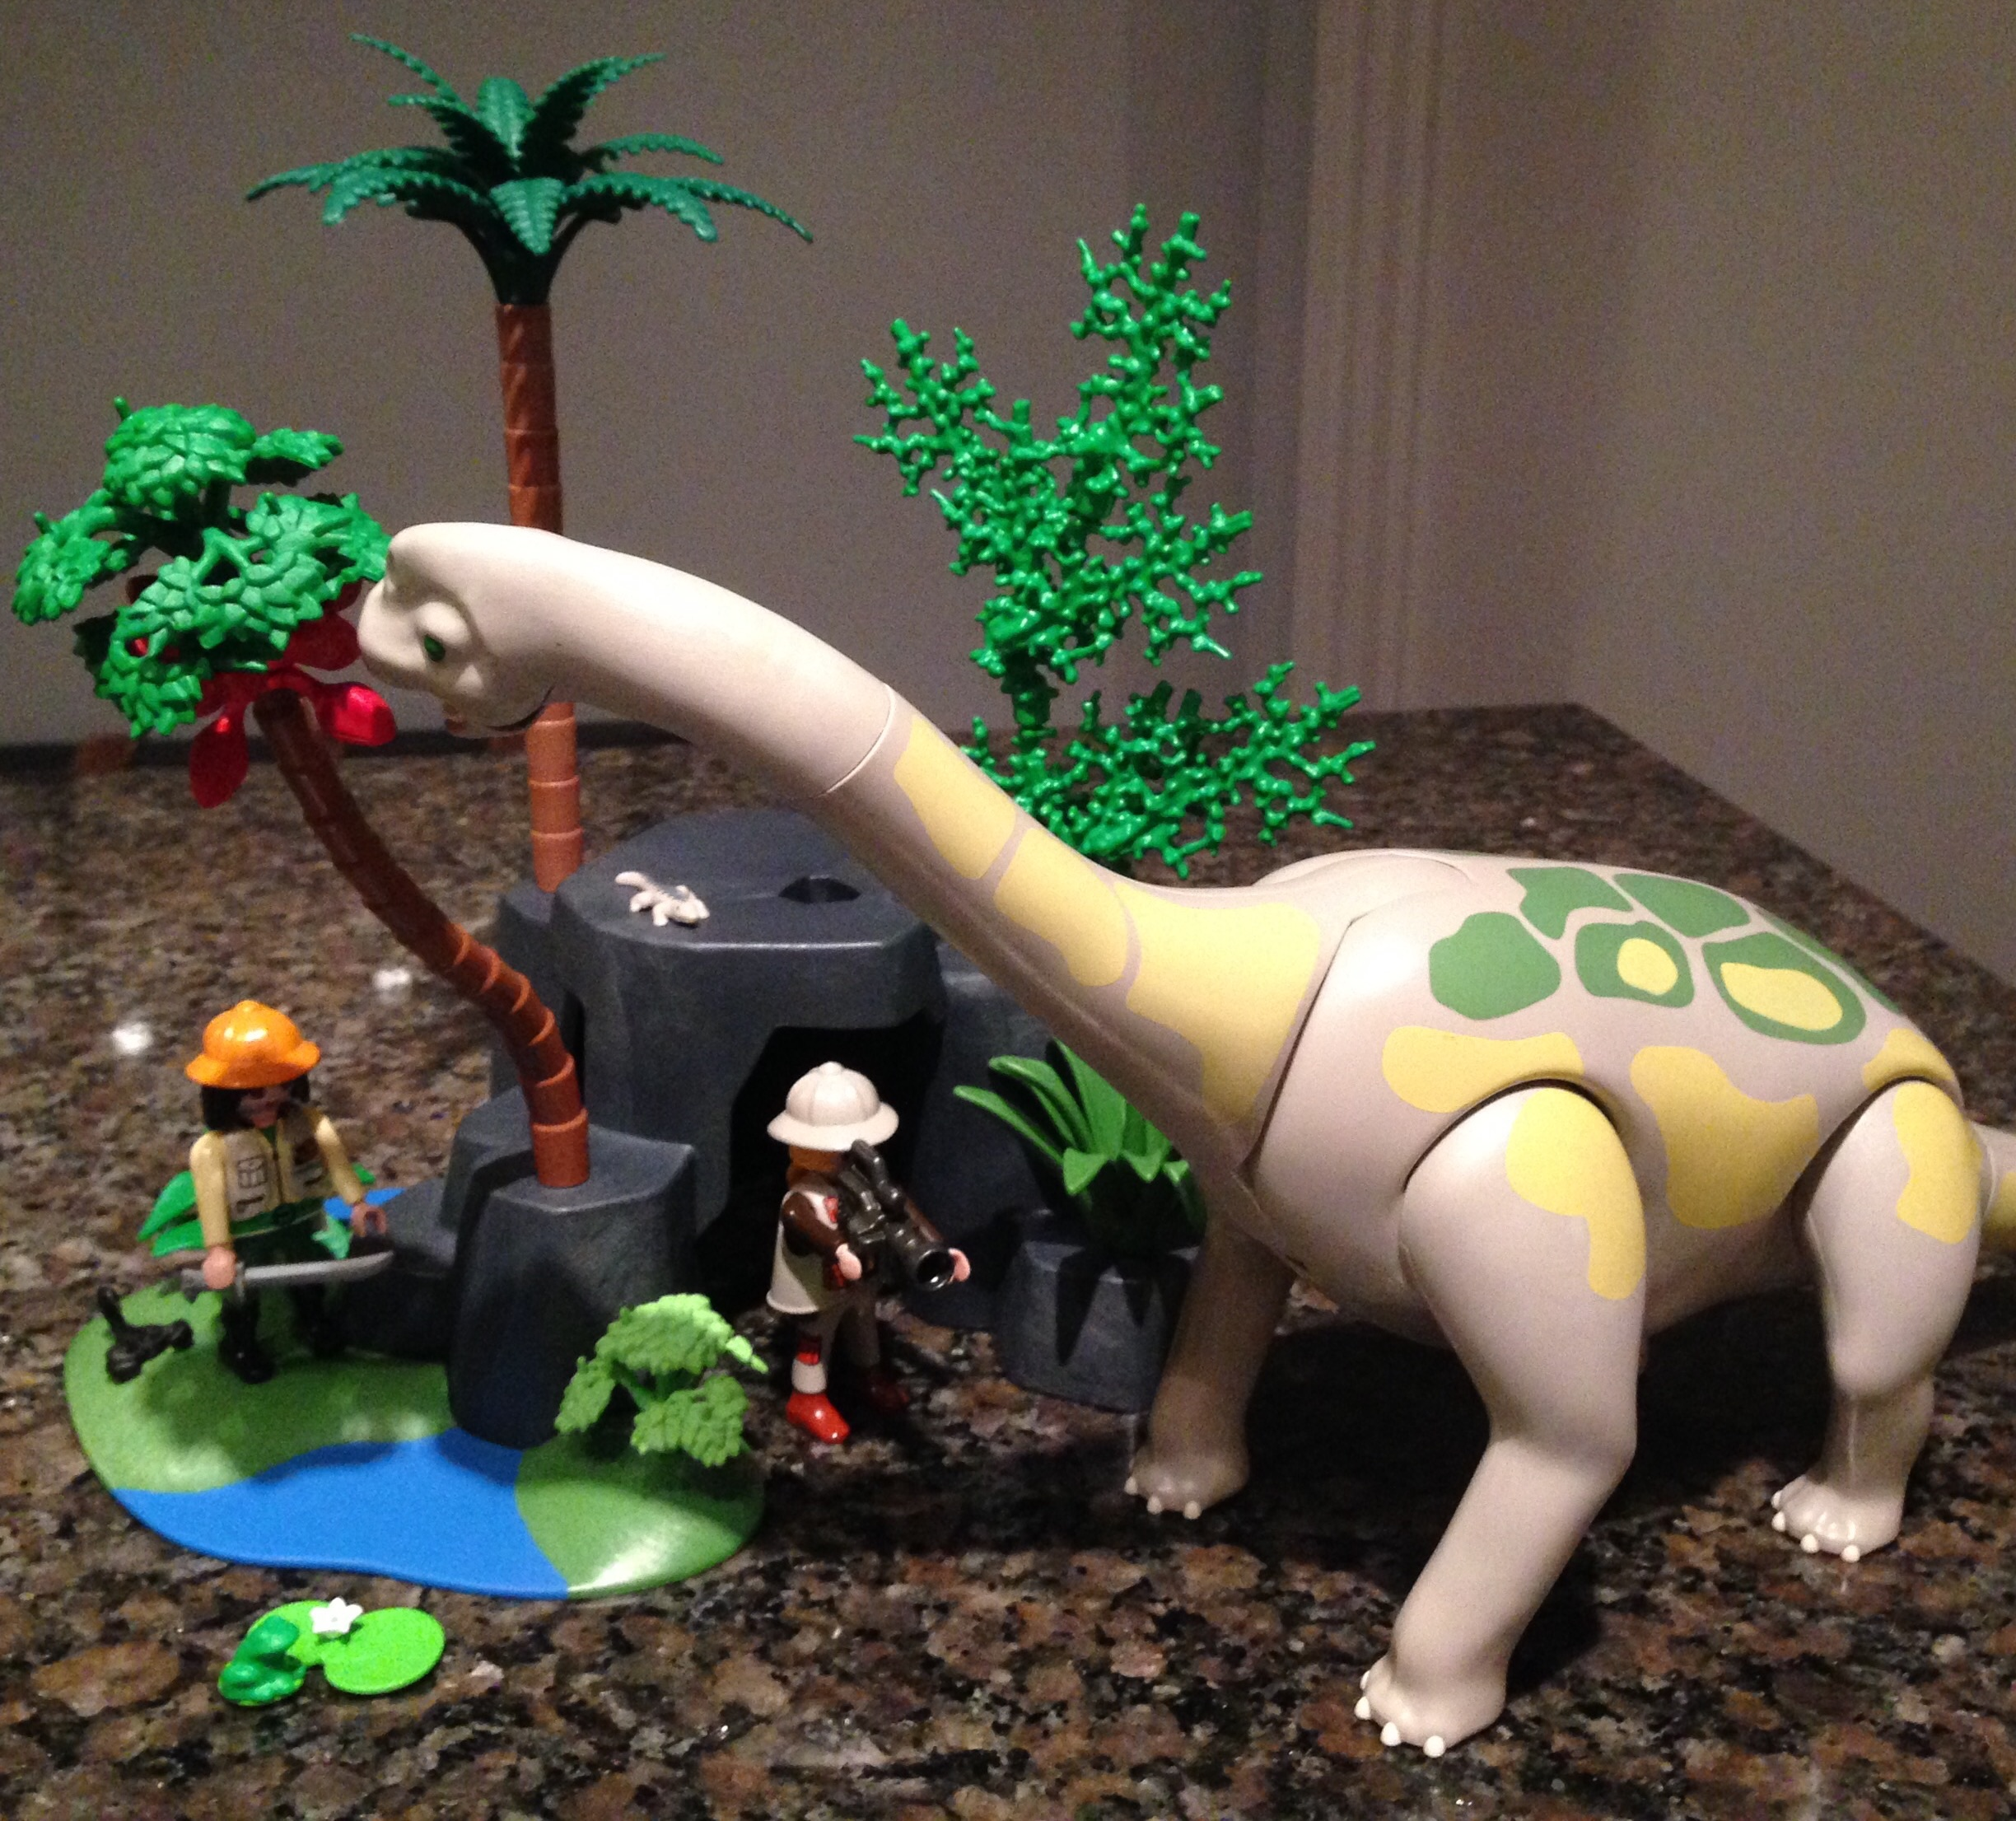 Brachiosaurus playmobil dinosaur toy blog - Dinosaur playmobile ...